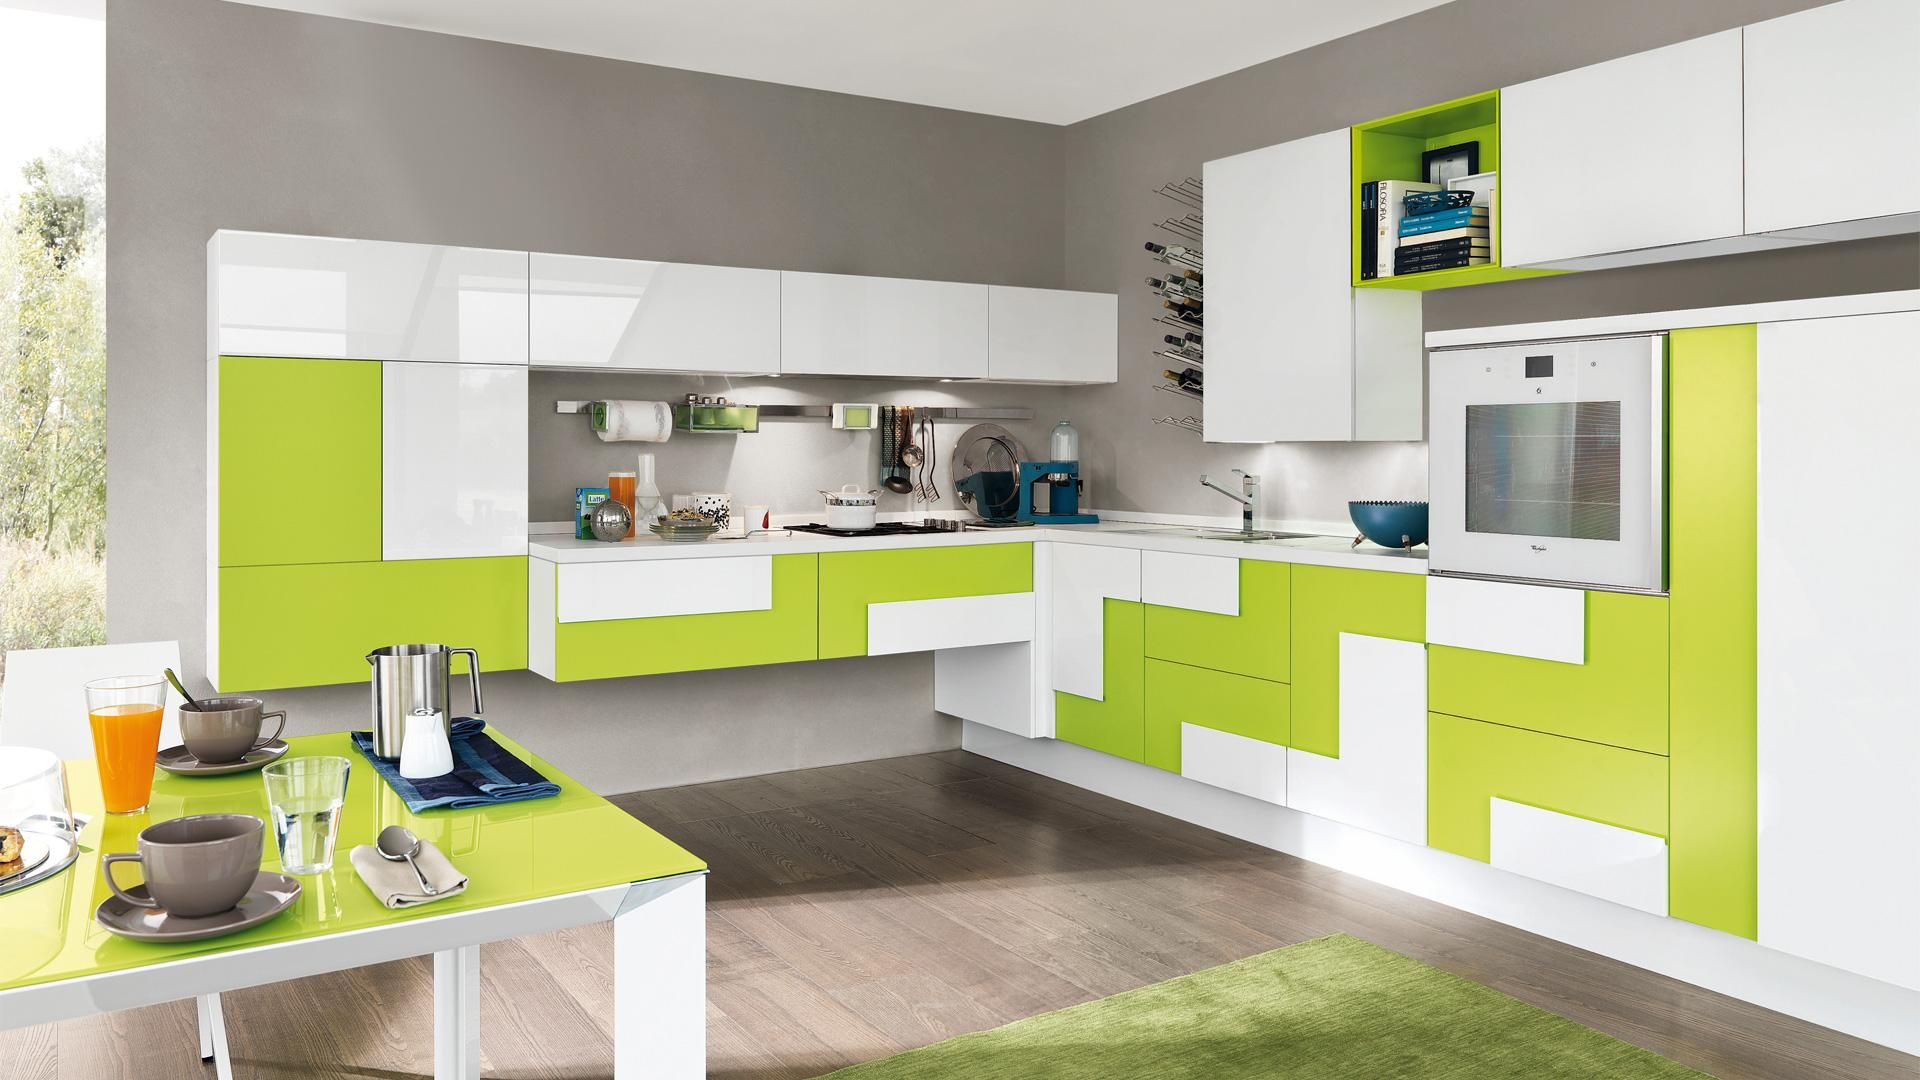 Arredamento Emilia Romagna modern kitchen collection – euro interior collection en 2020